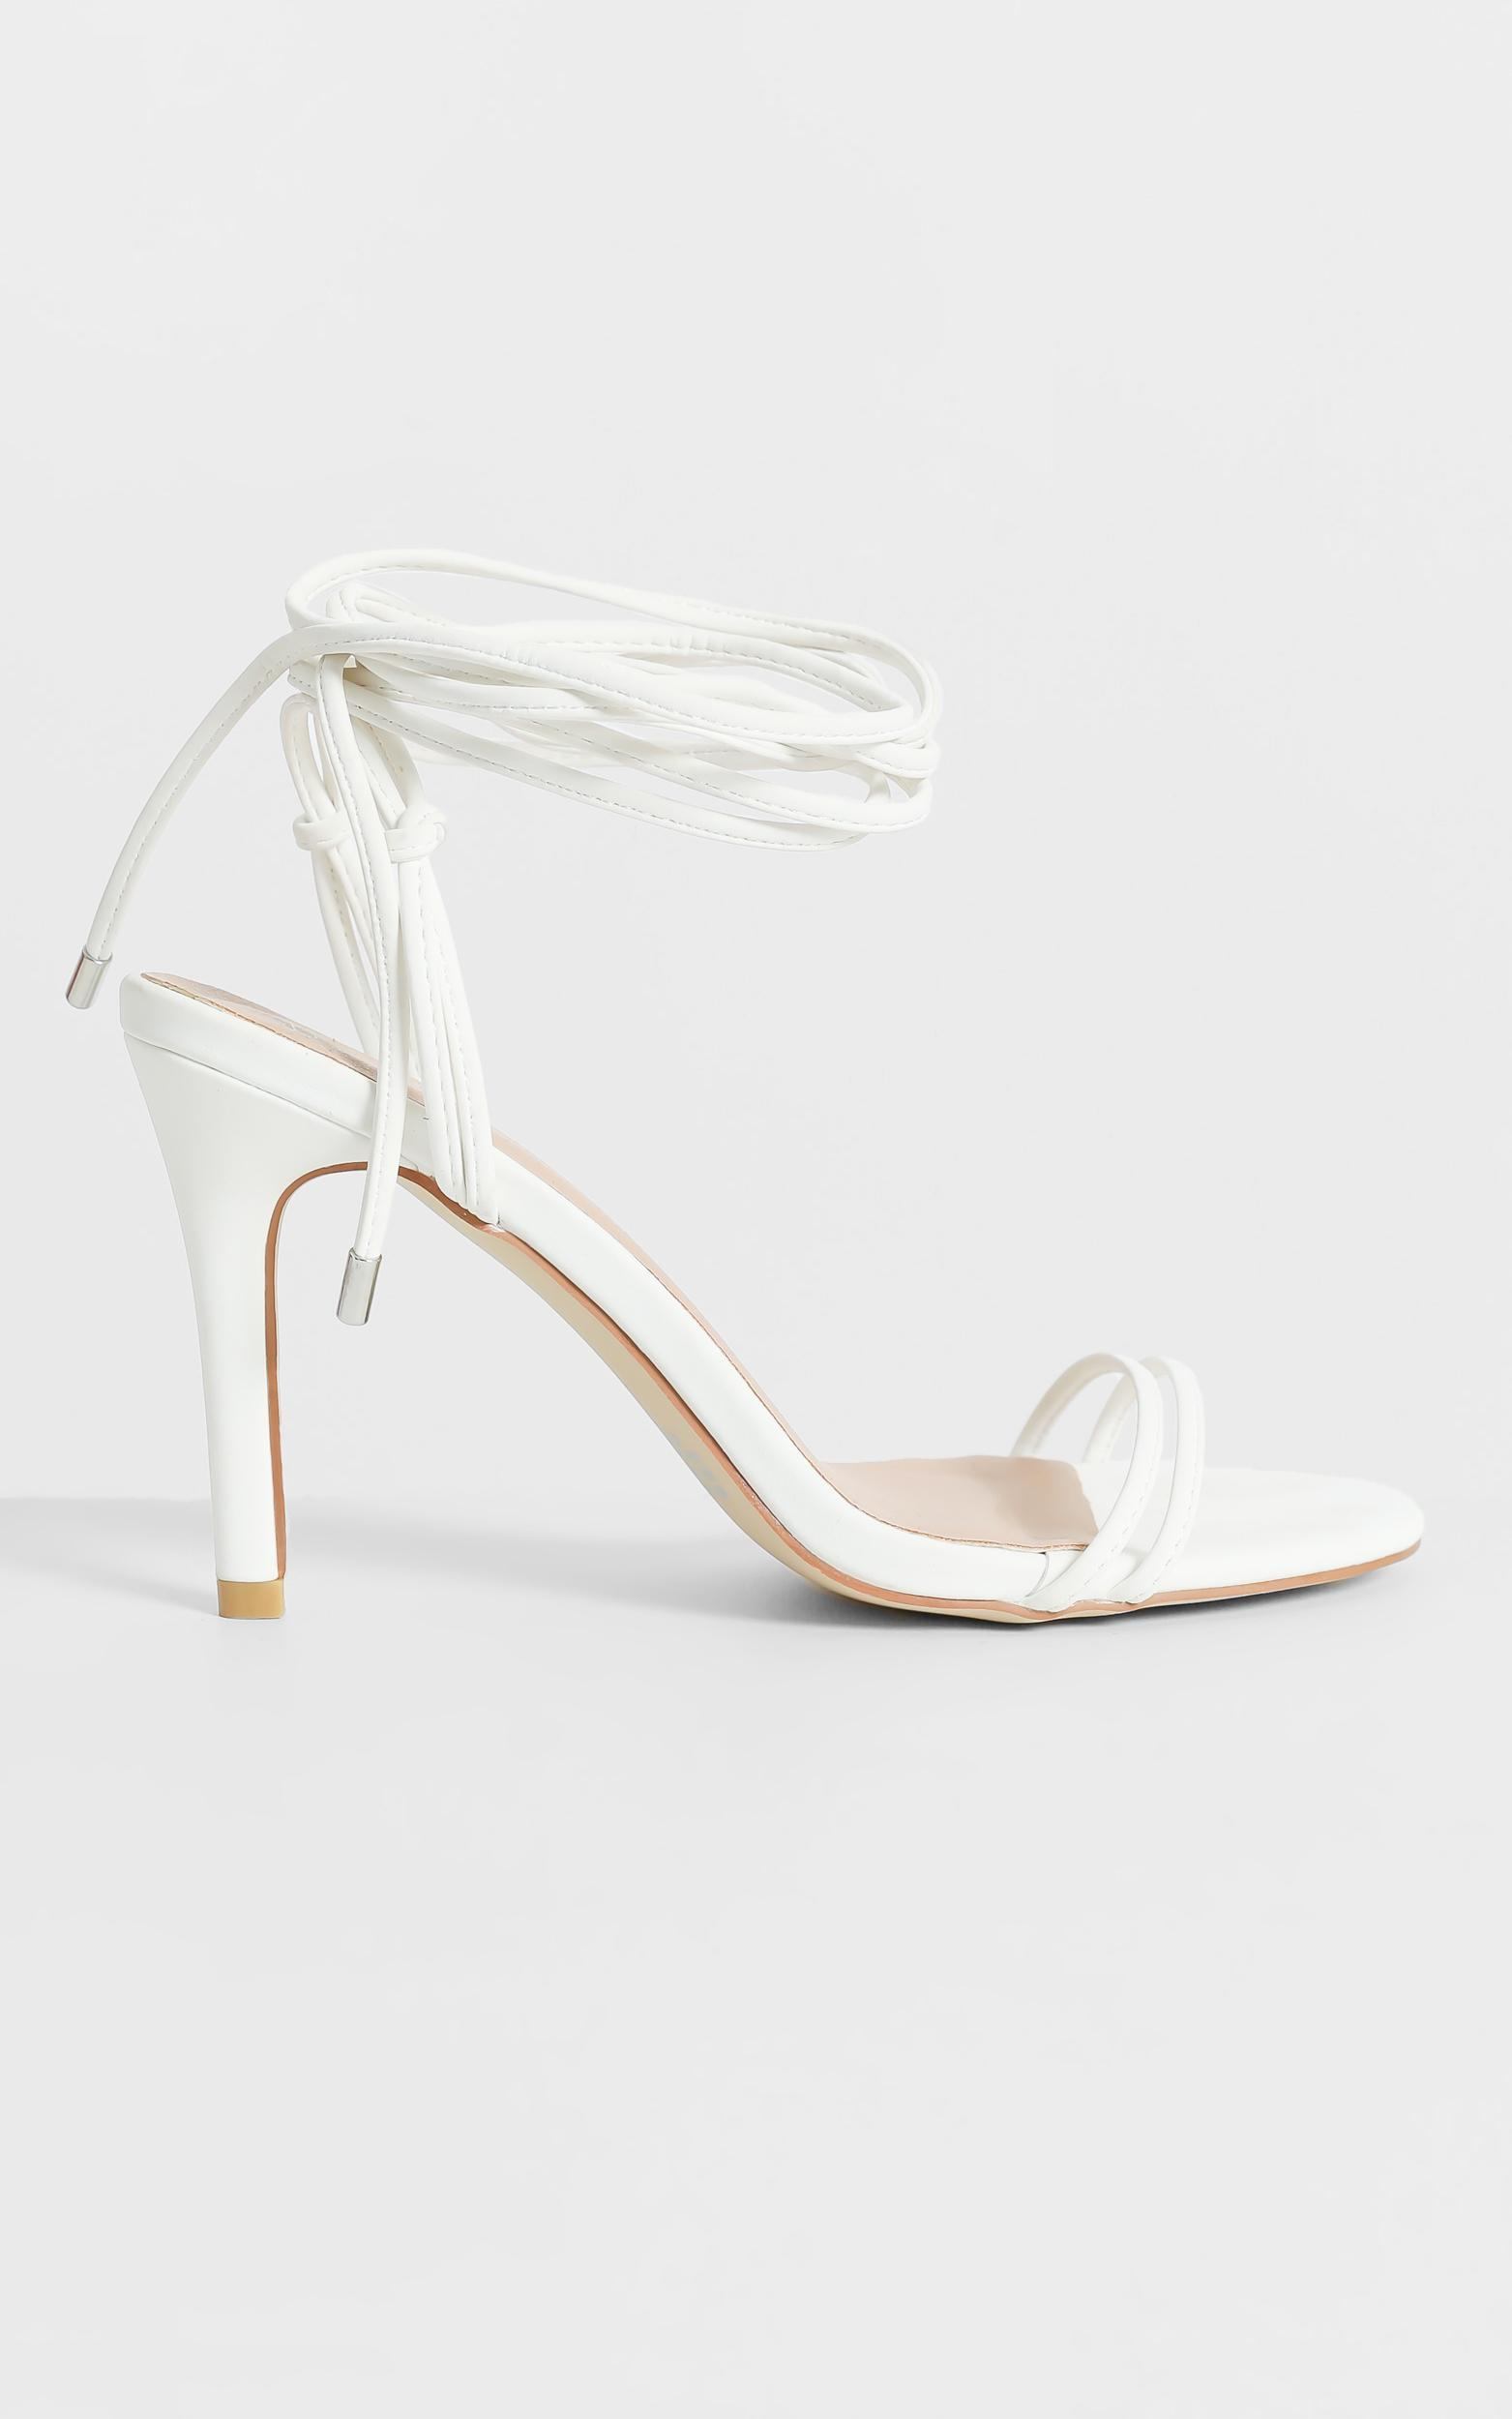 Therapy - Vibes Heels in White - 5, White, hi-res image number null